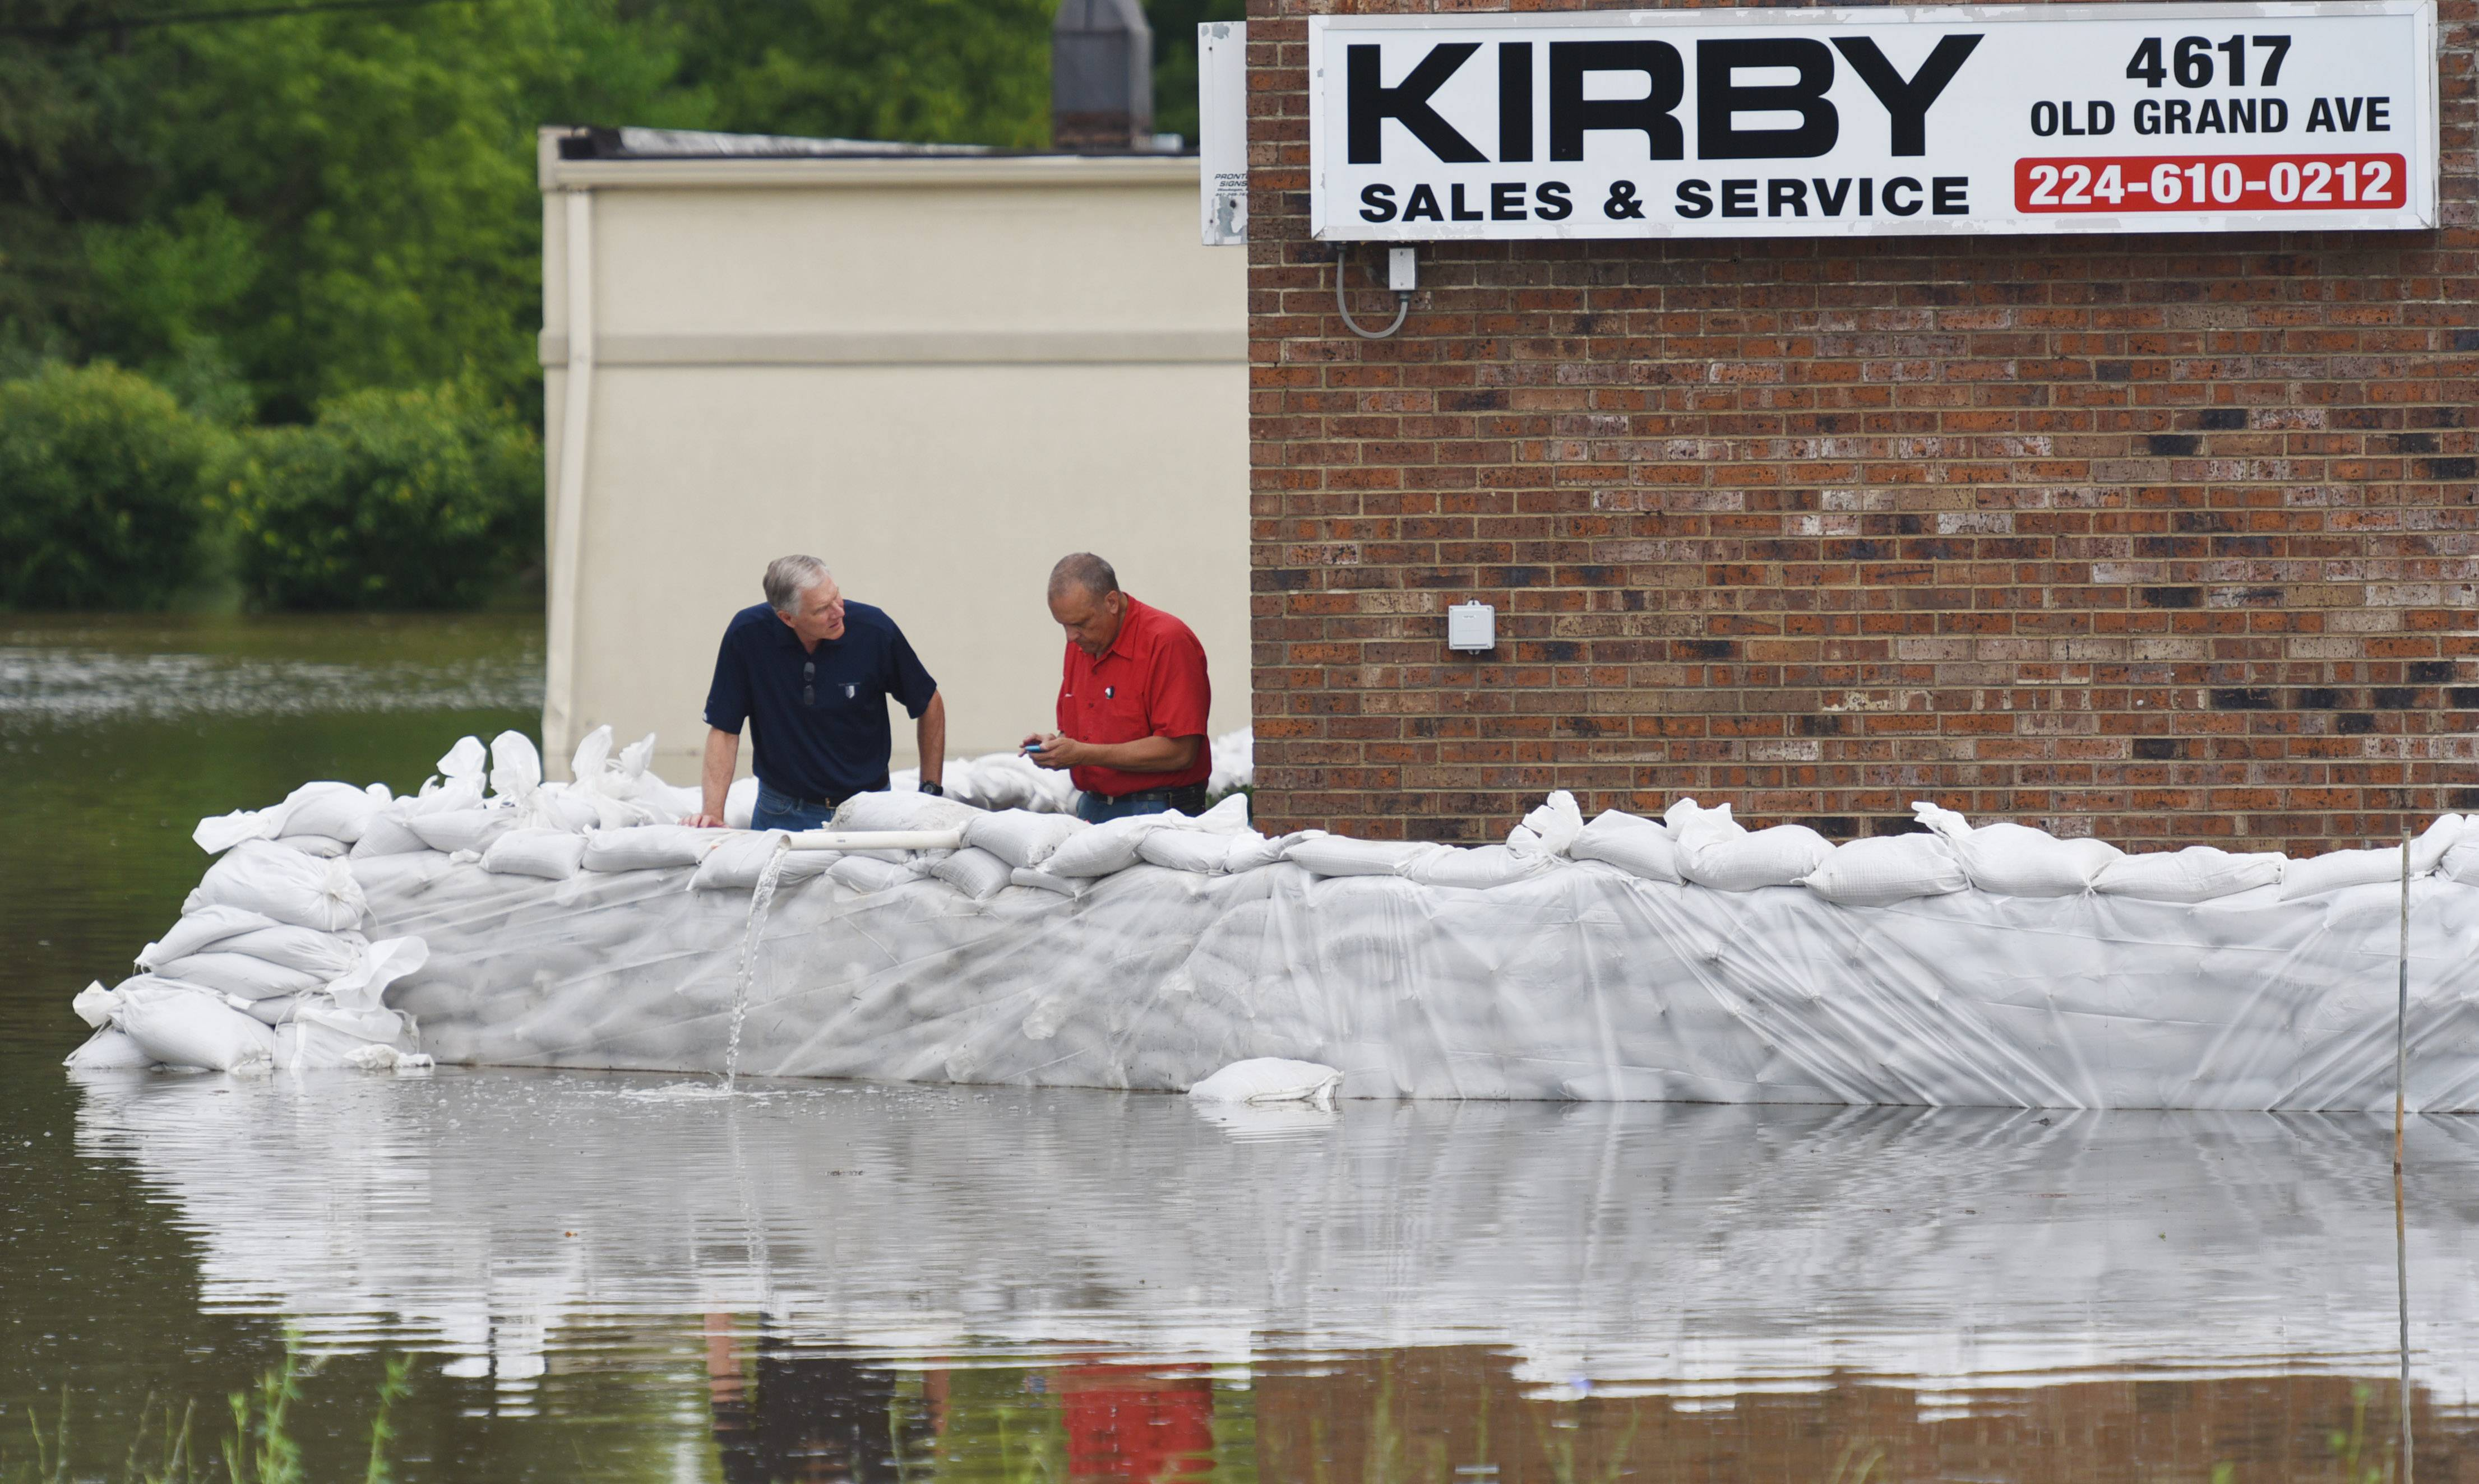 Paul Valade/pvalade@dailyherald.comSandbags protect businesses along Old Grand Avenuee in Gurnee Thursday.